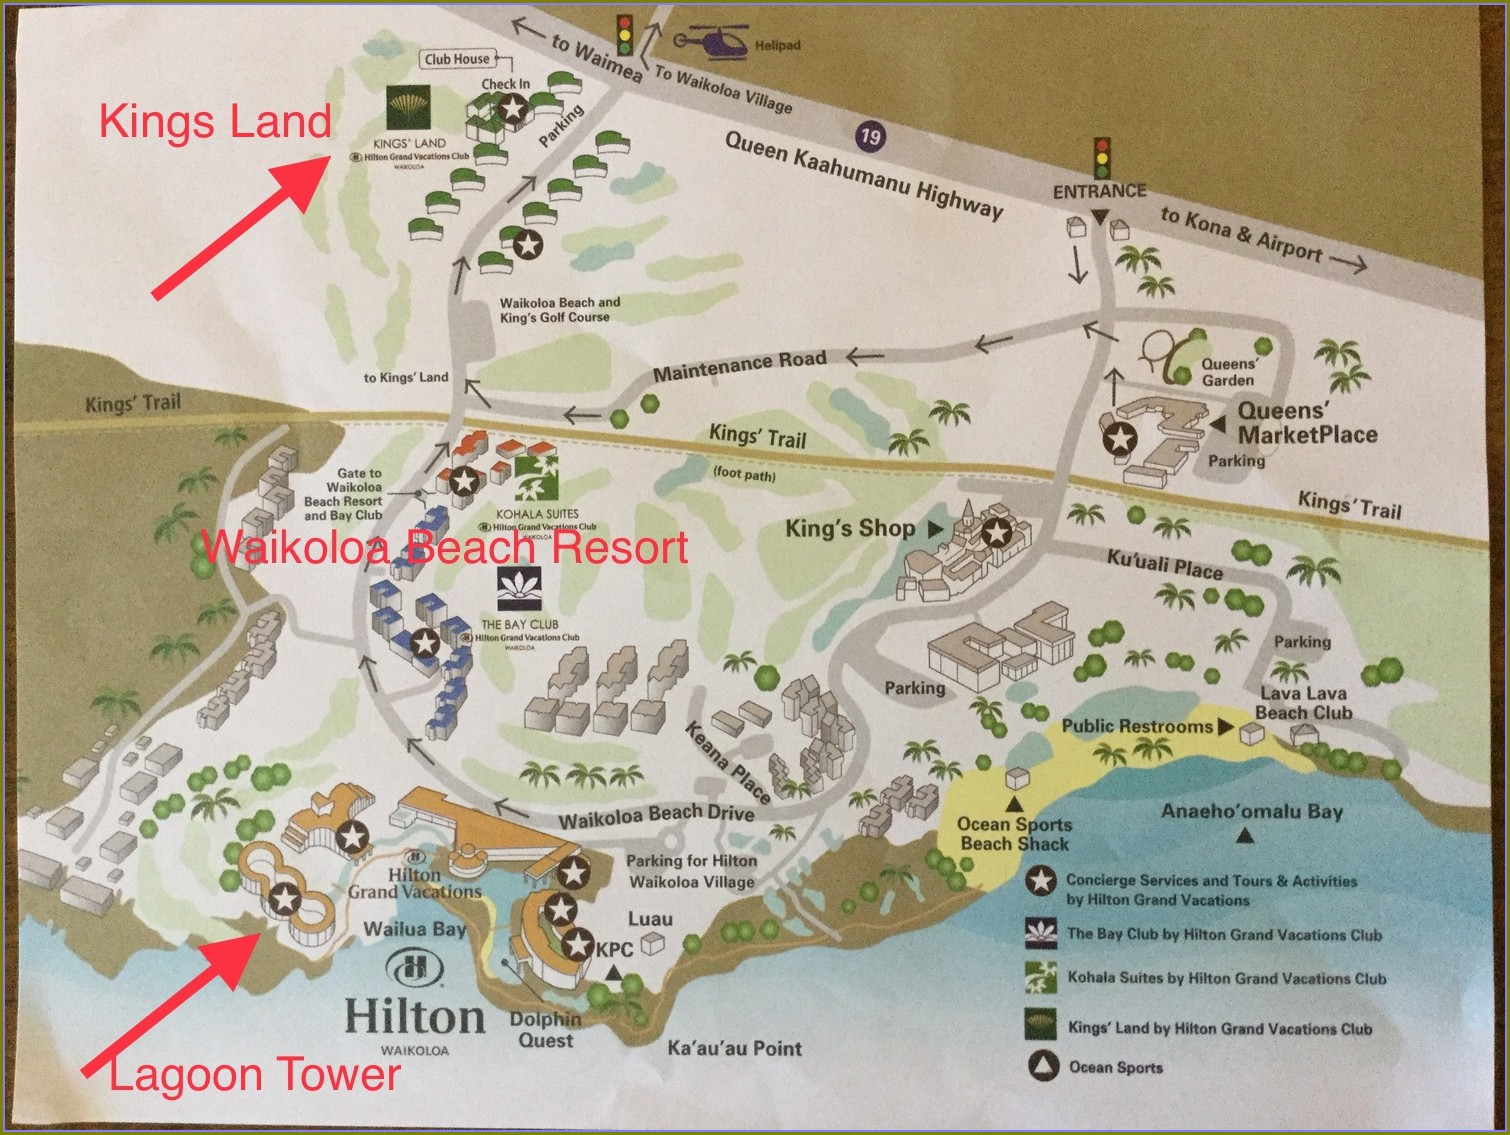 Hilton Kings Land Map